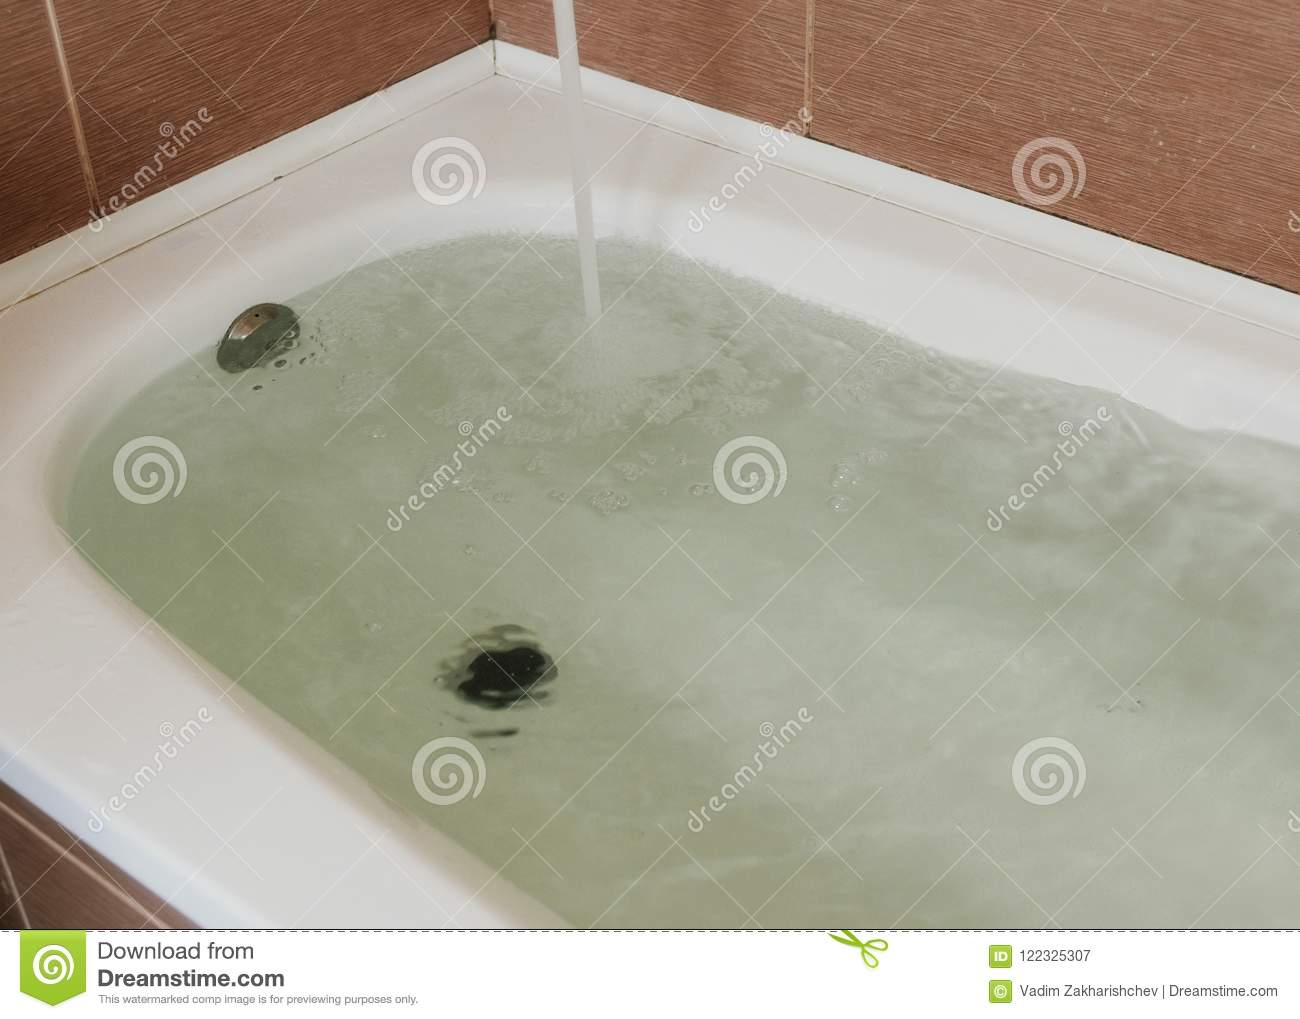 Water Poured Into The Tub. Full Bath. Close Up. Stock Image - Image ...